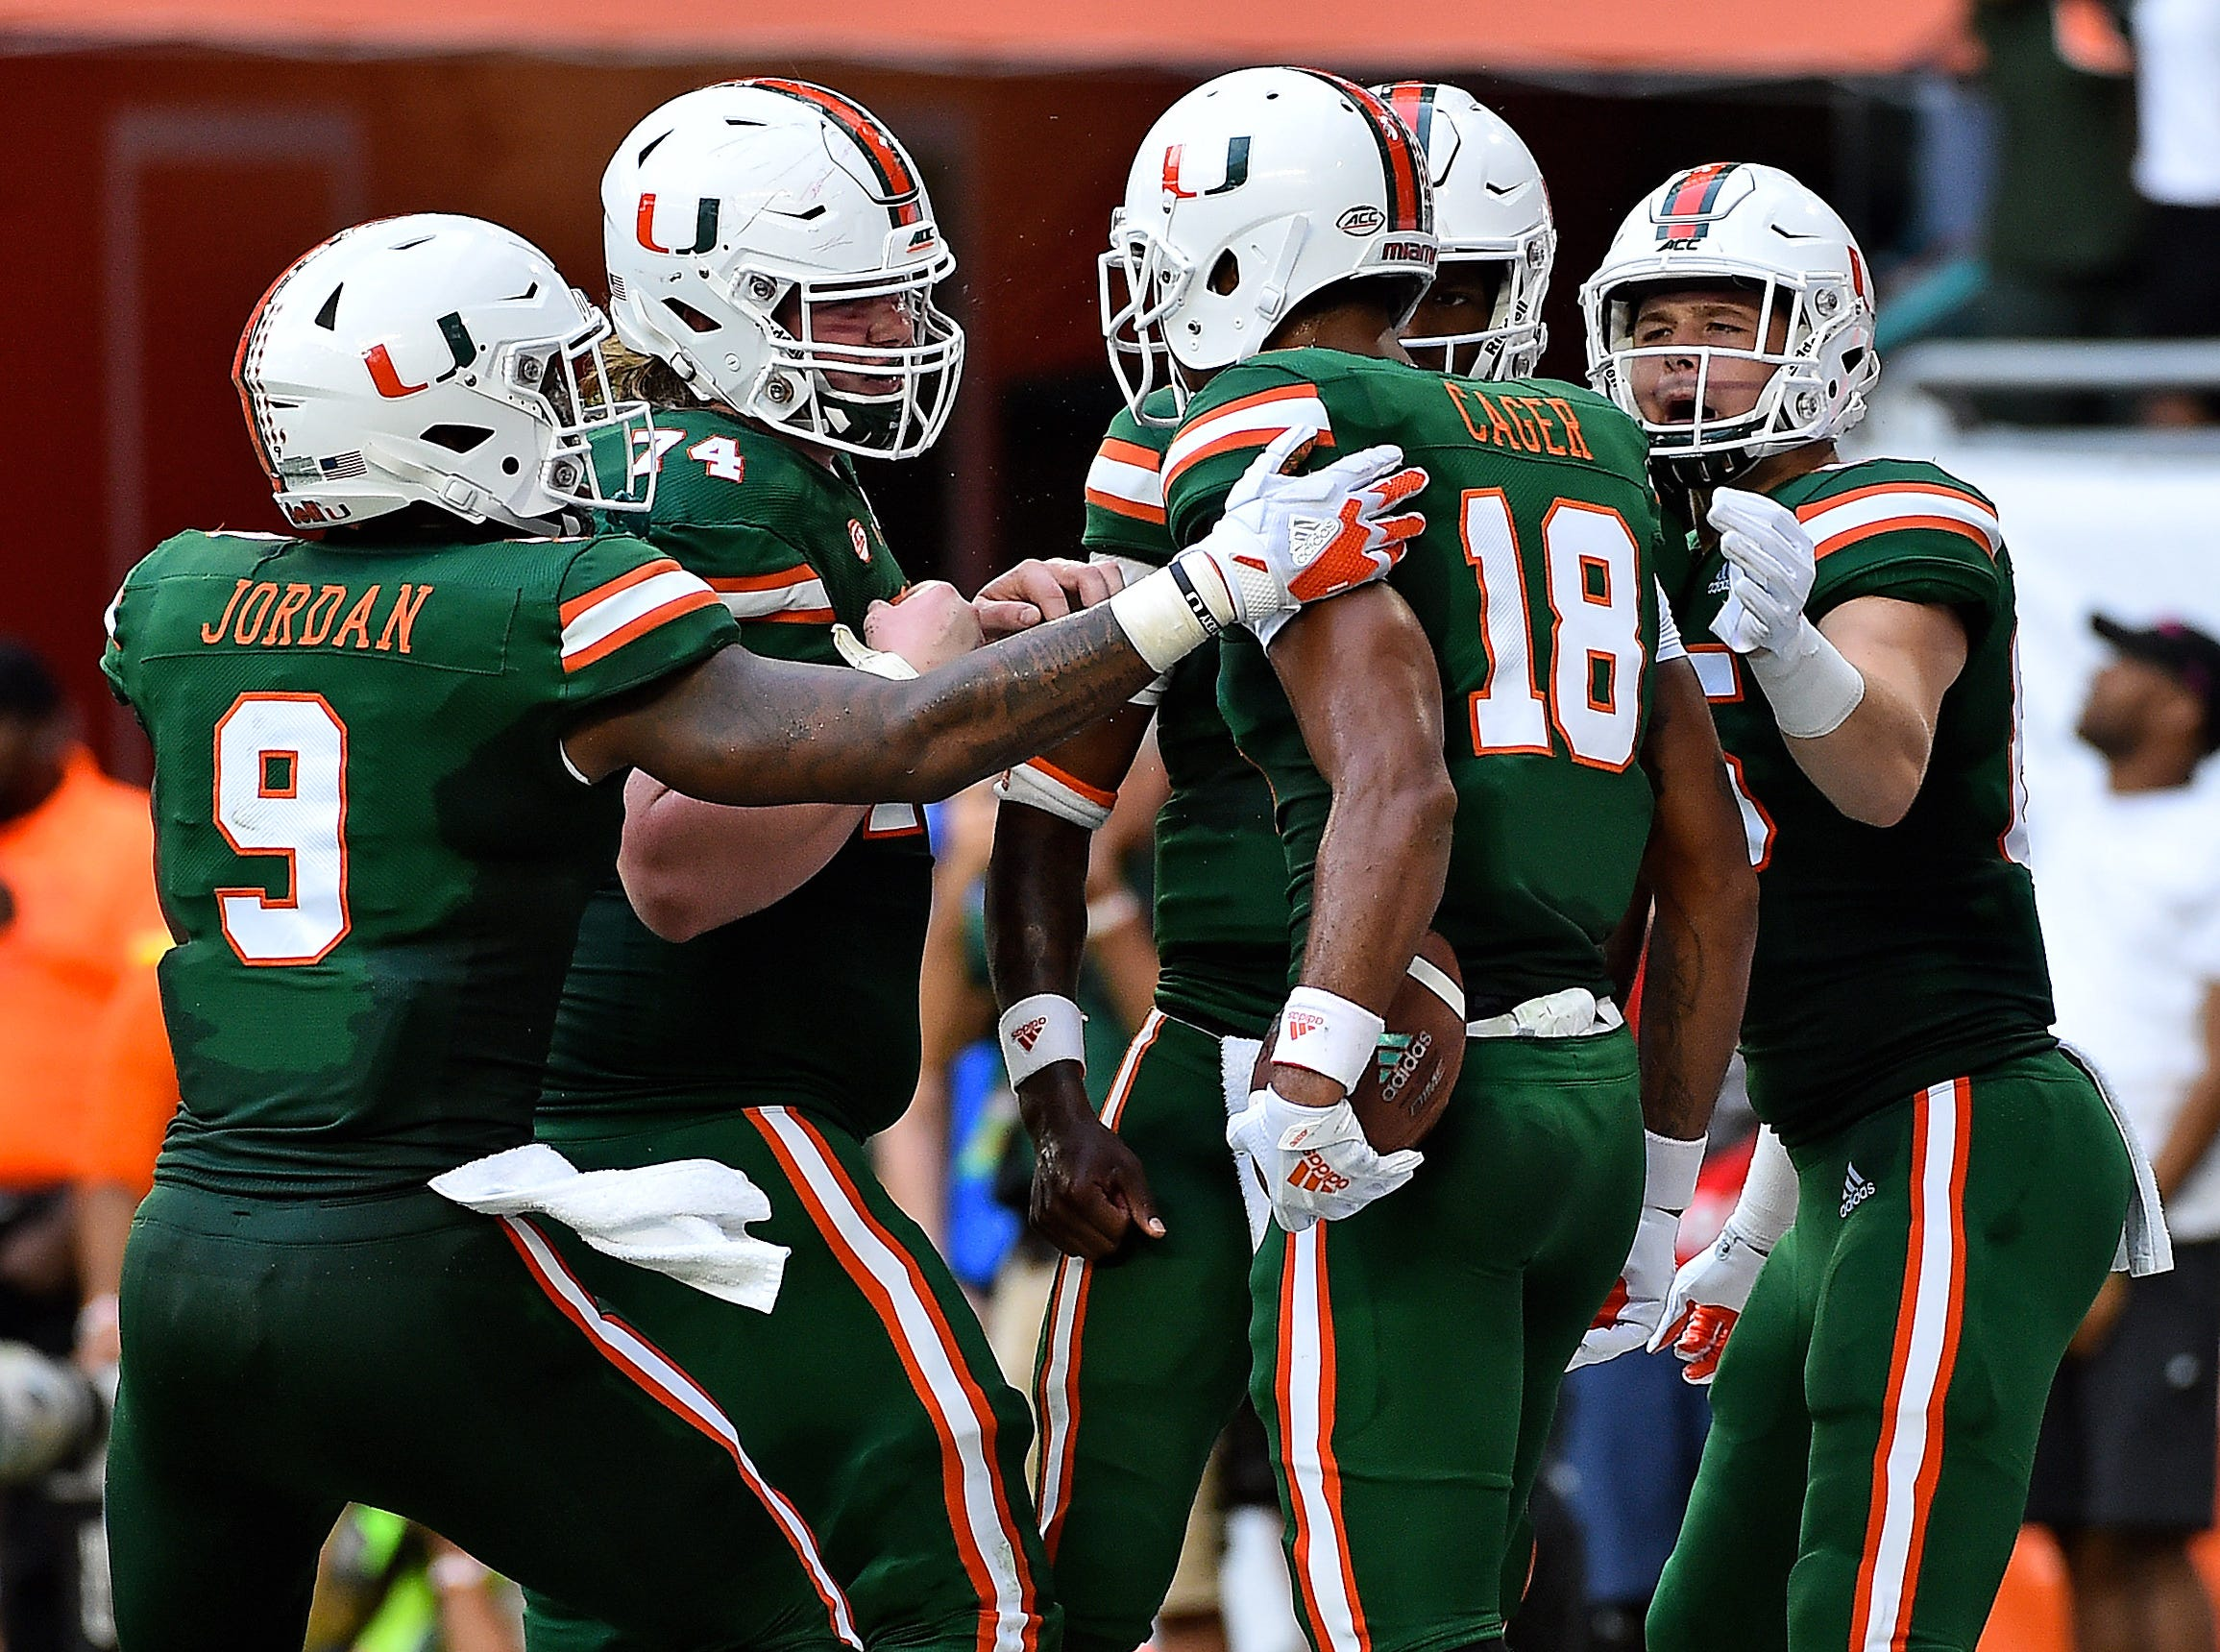 Oct 6, 2018; Miami Gardens, FL, USA; Miami Hurricanes wide receiver Lawrence Cager (18) celebrates after scoring a touchdown against the Florida State Seminoles during the first half at Hard Rock Stadium. Mandatory Credit: Jasen Vinlove-USA TODAY Sports